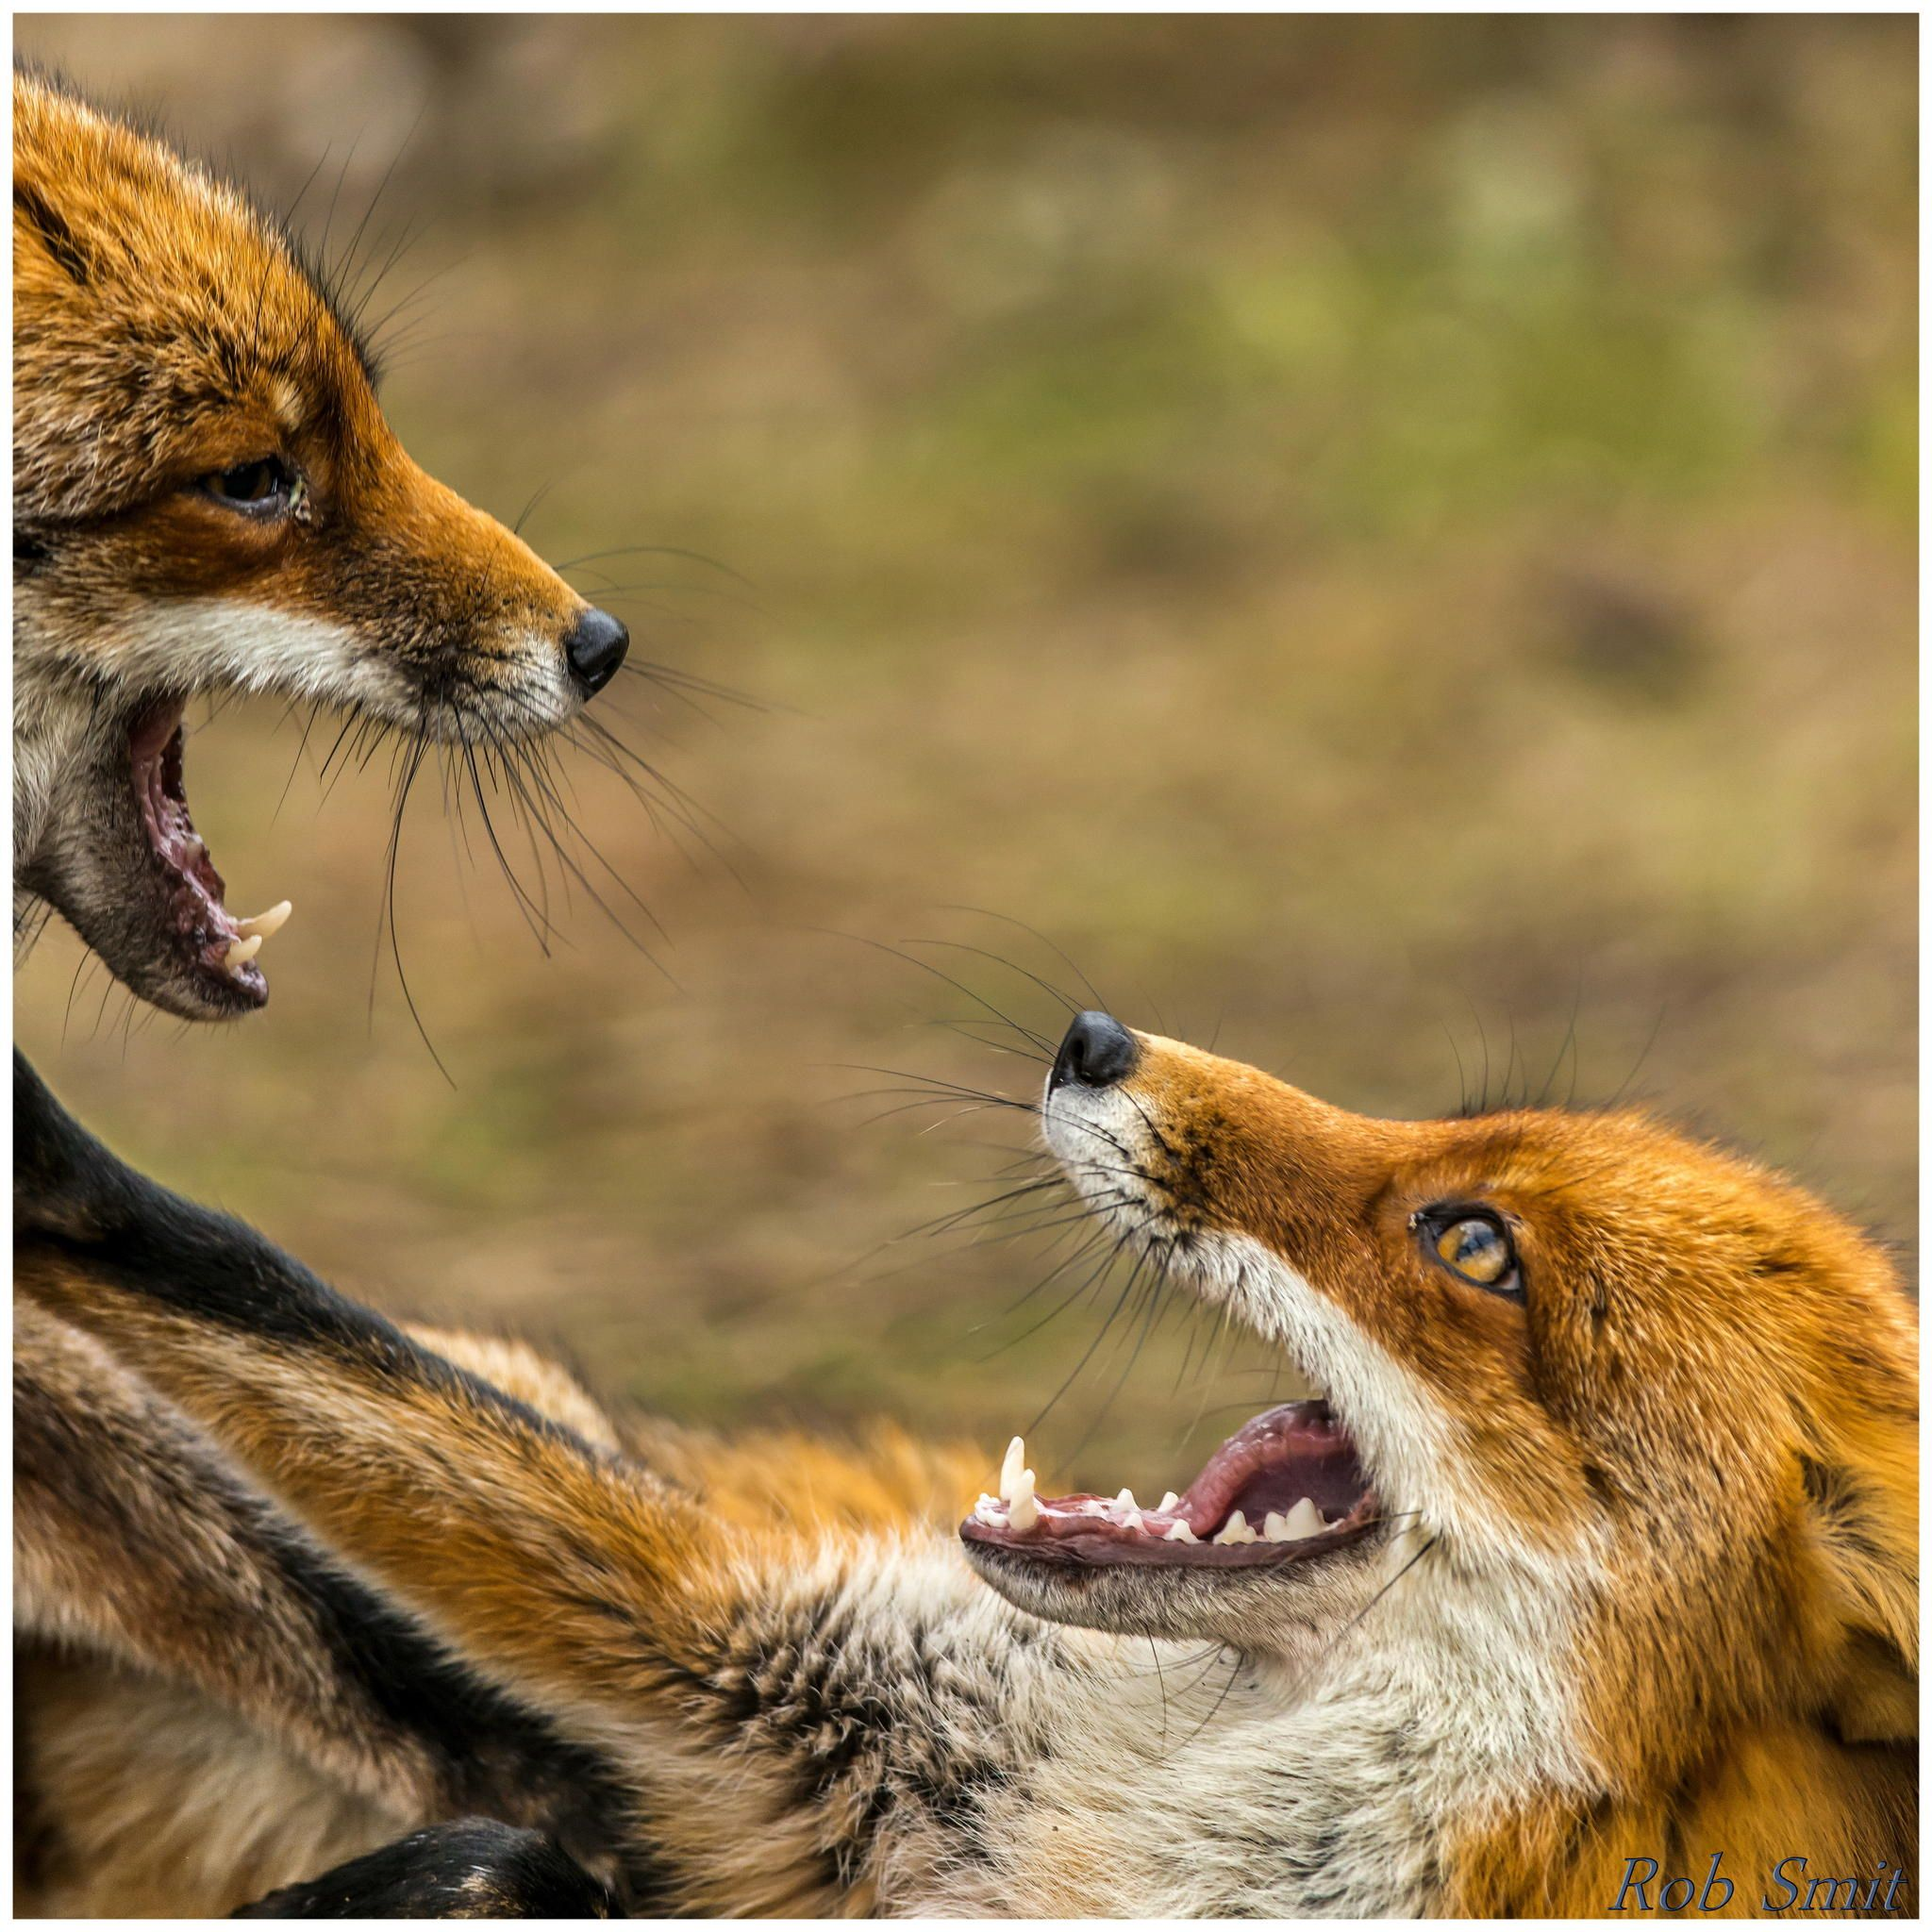 Fighting foxes part II (Vulpes vulpes) by Rob Smit on 500px